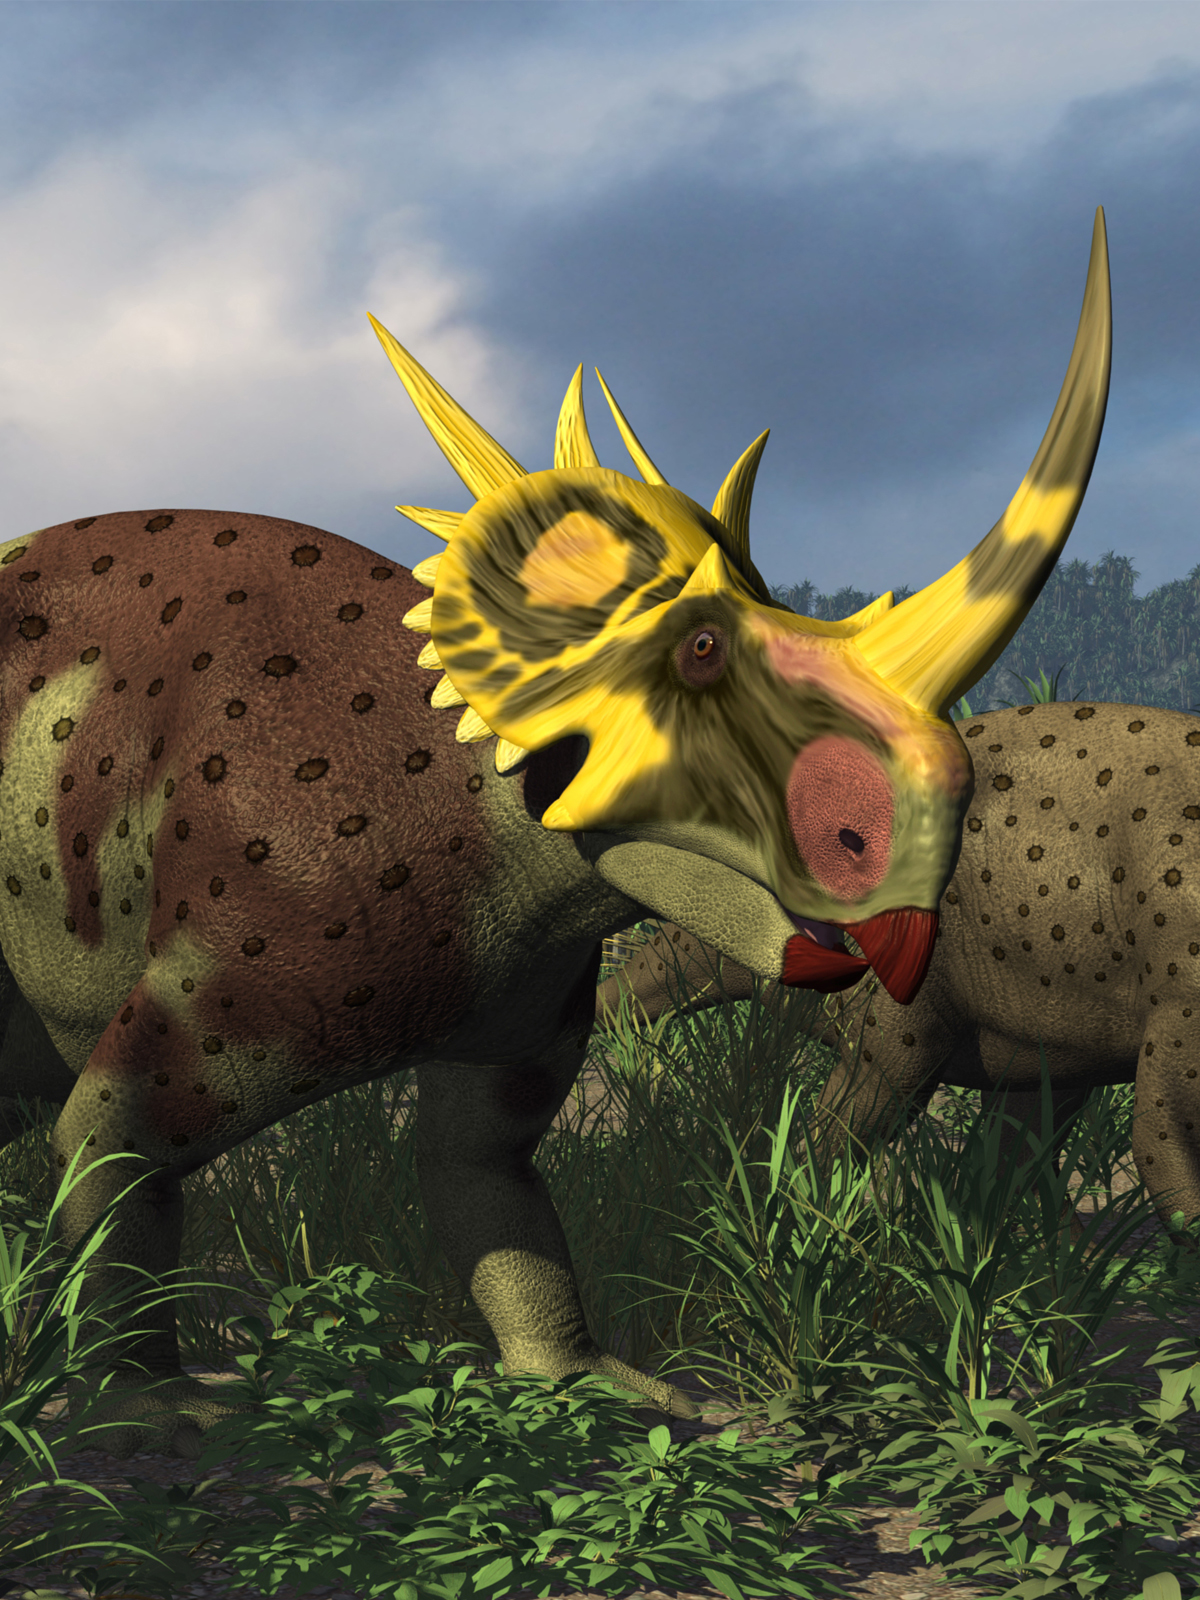 Rubeosaurus DR - Extended License by Dinoraul